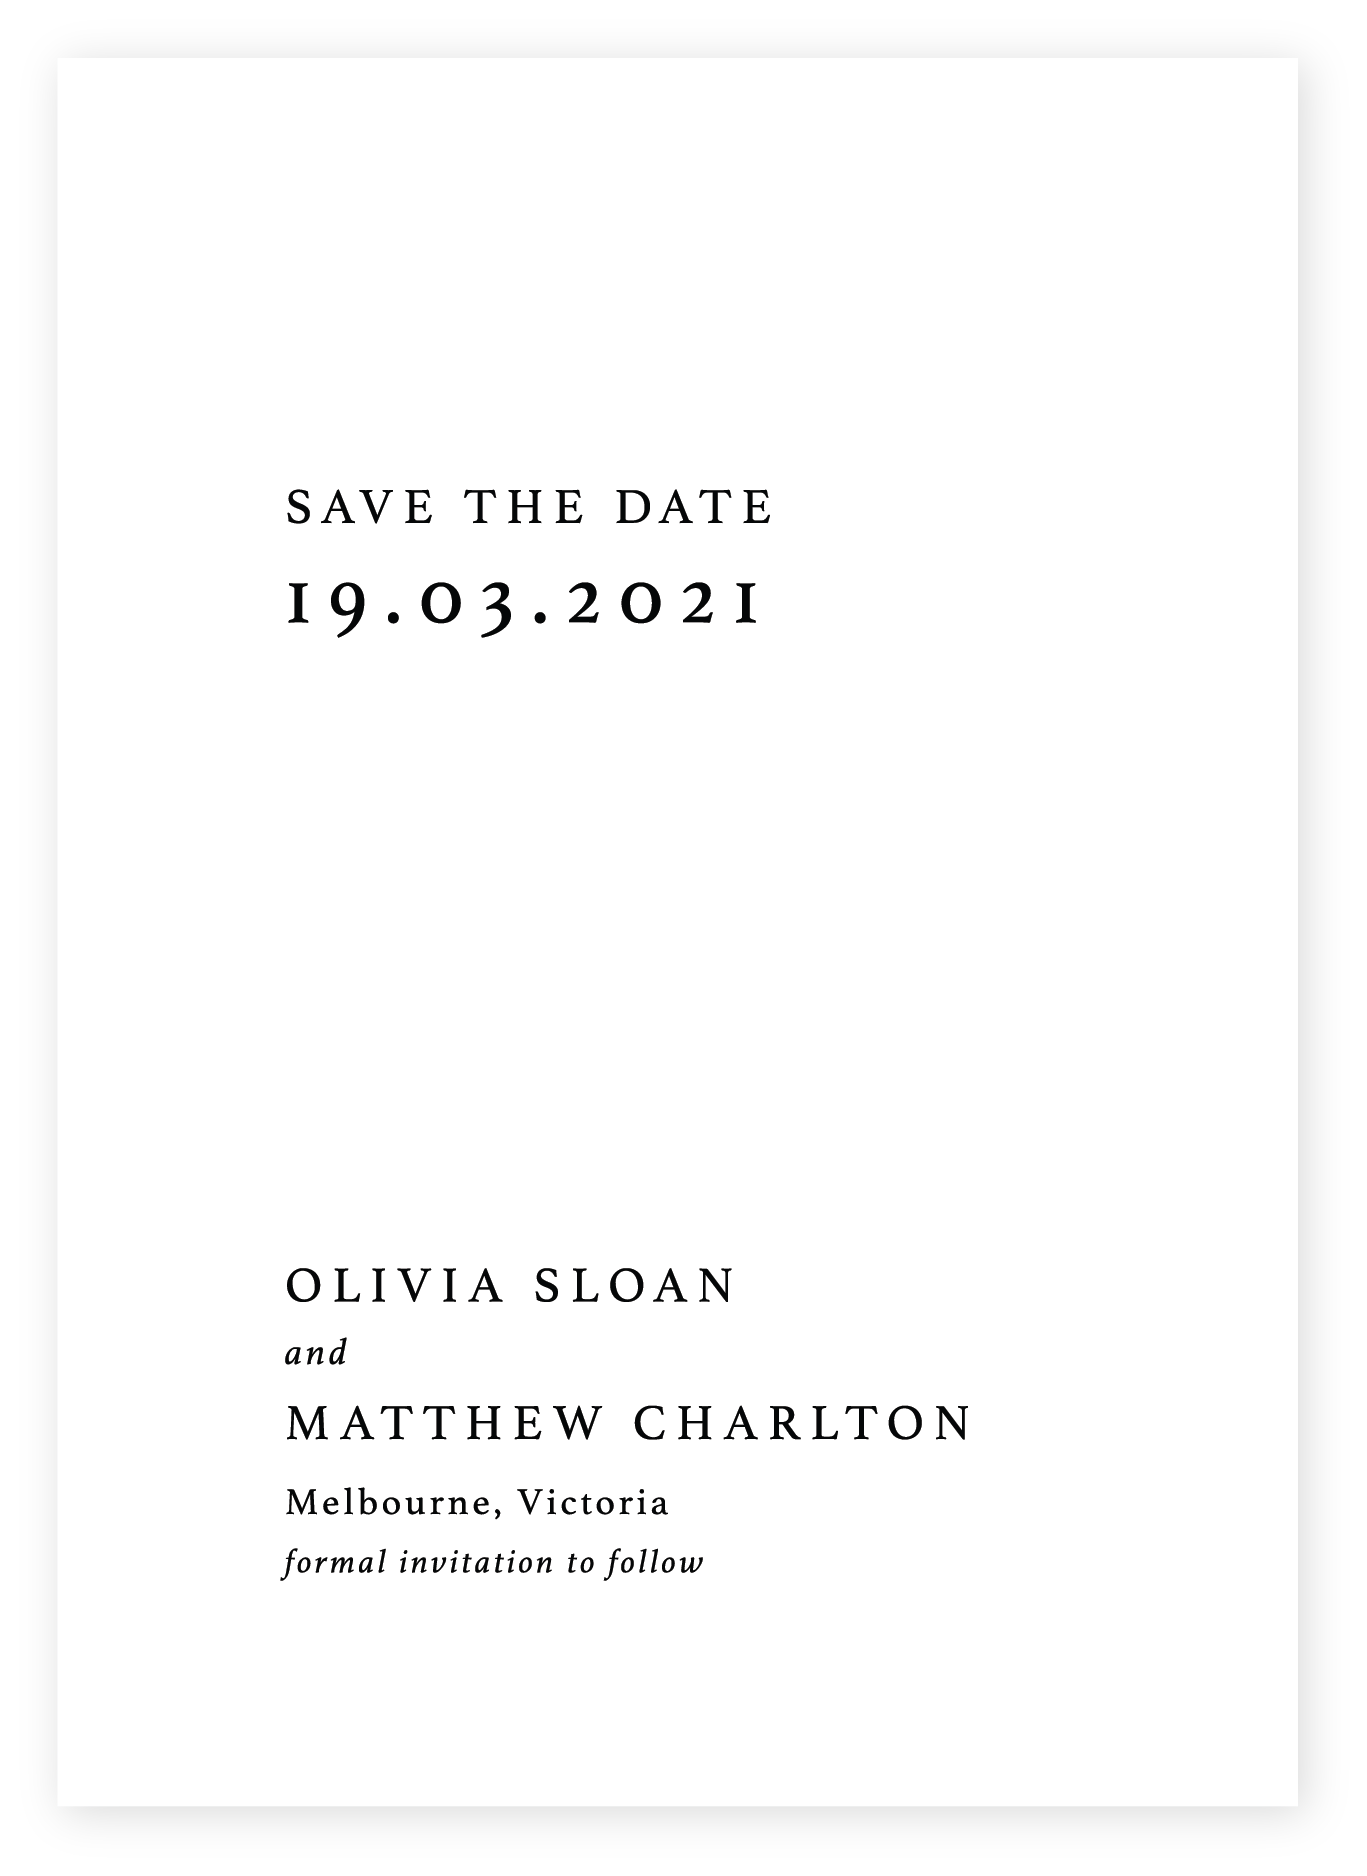 Minimalist Save the Date, black on White card